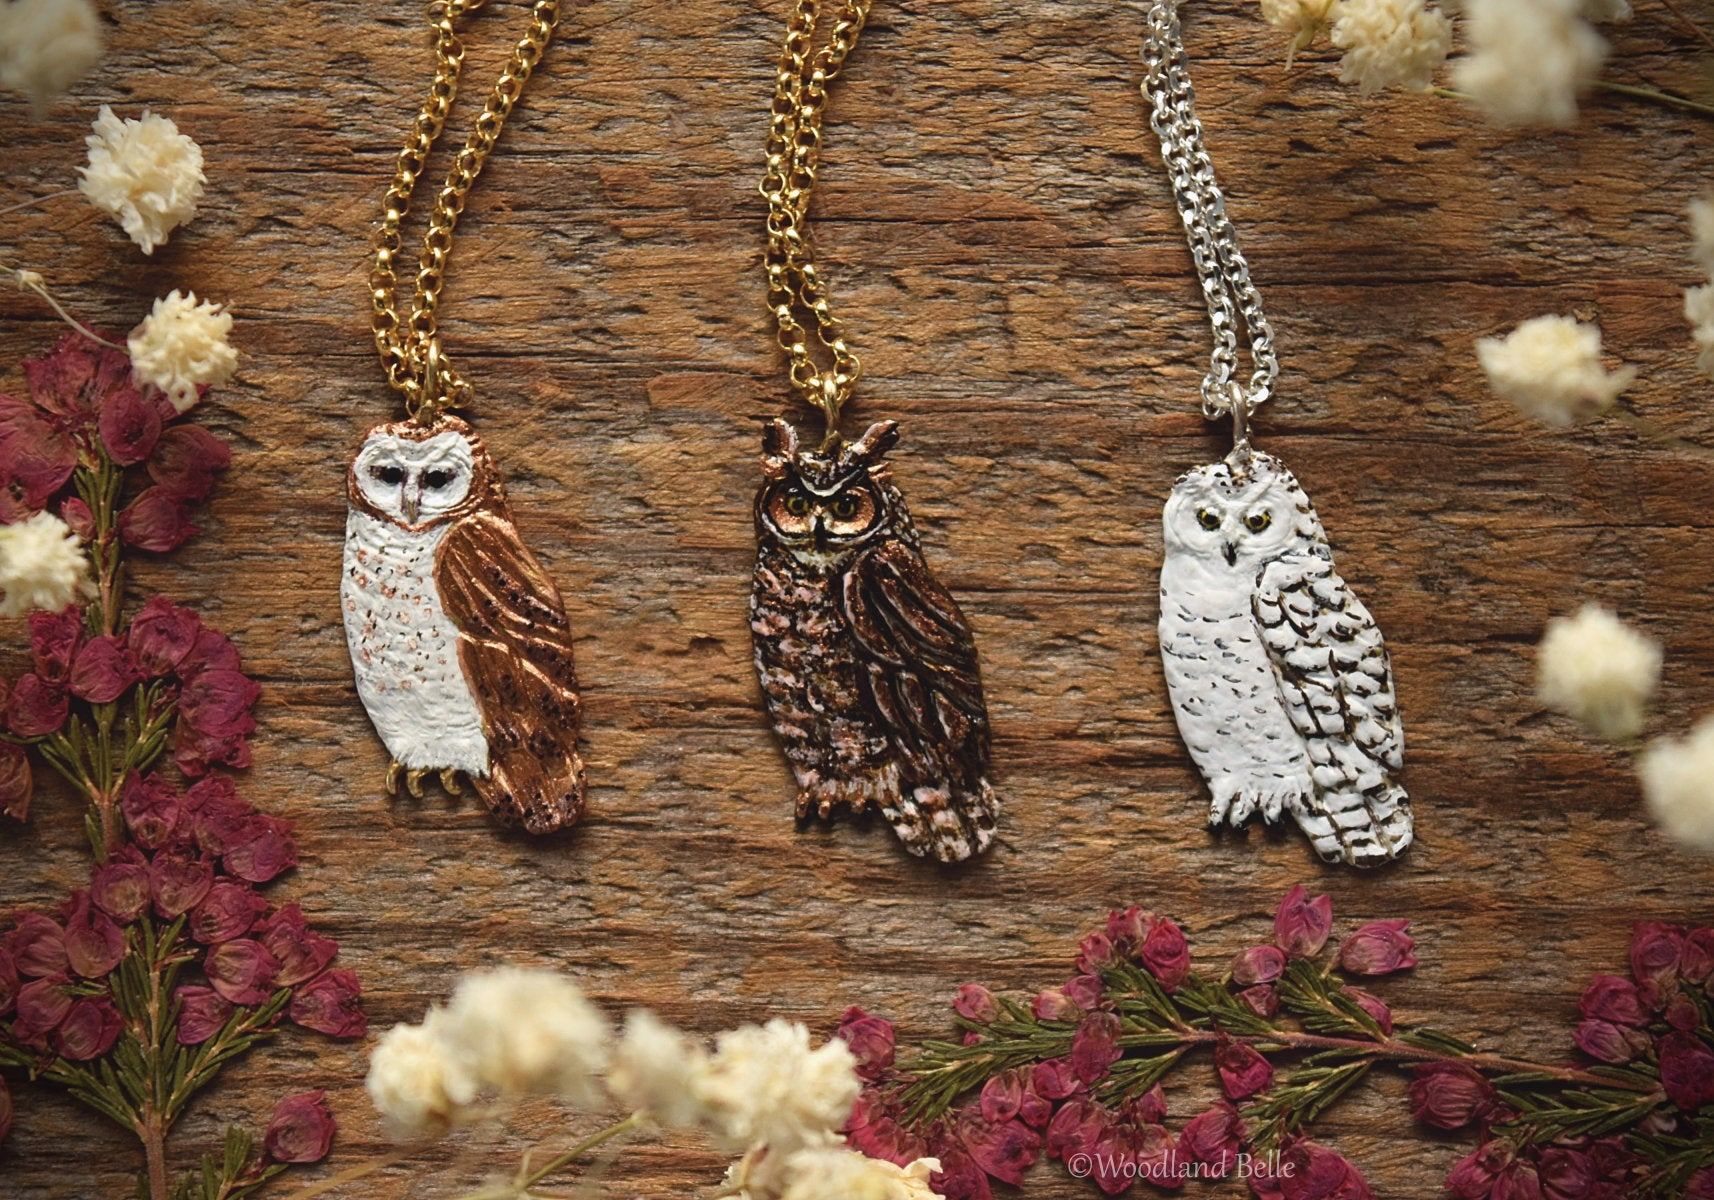 Owl Necklace - Enameled Barn Owl Pendant - Bronze Metal Painted Owl Charm Necklace - Bird/Owl Lover Jewelry Gift - by Woodland Belle-Woodland Belle